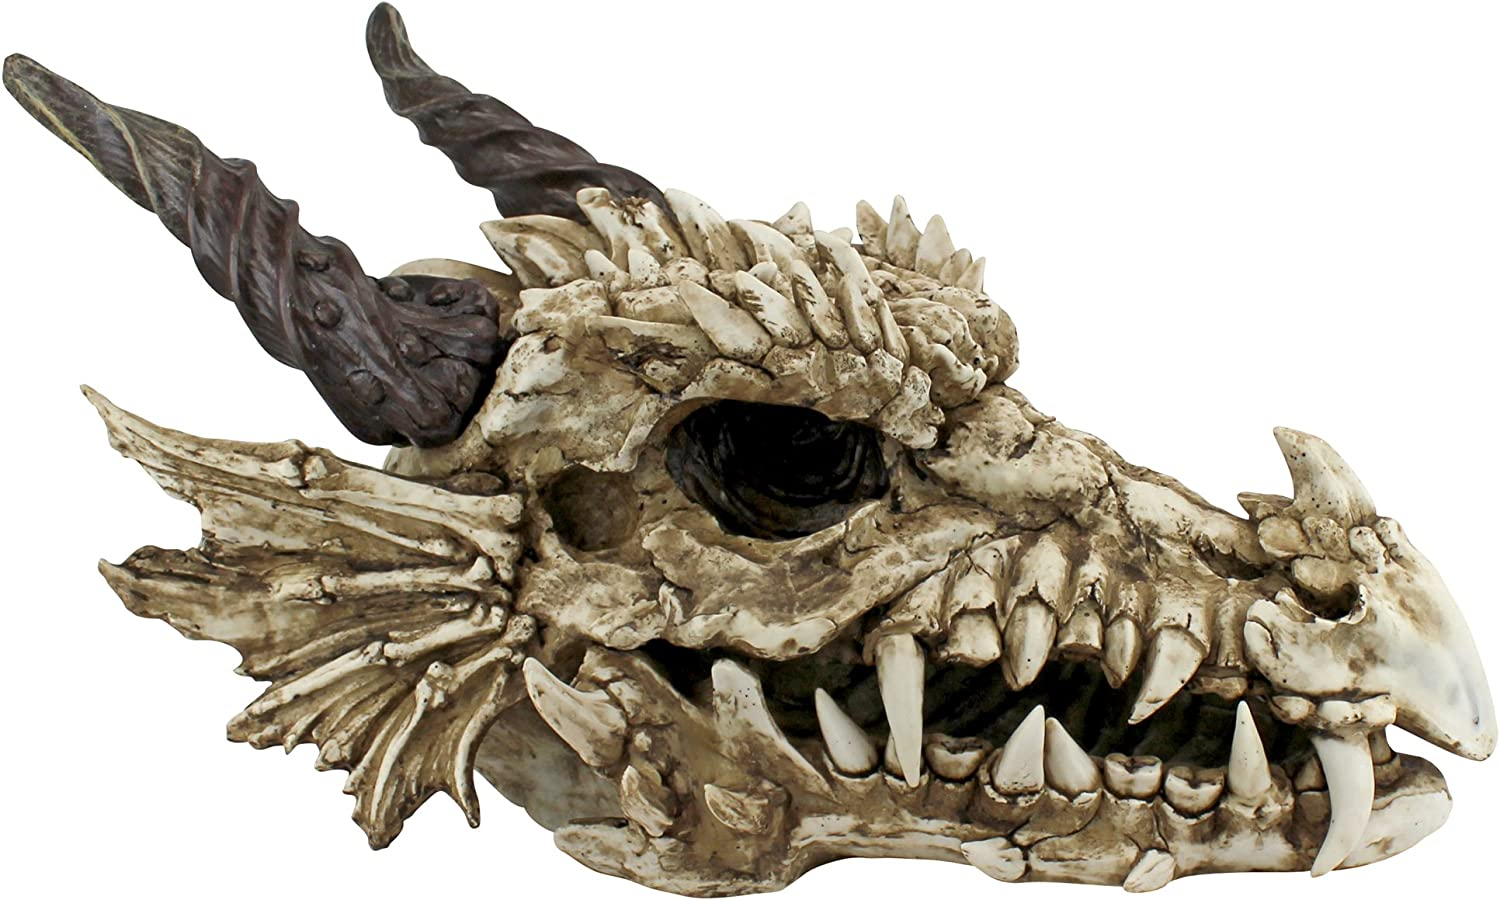 Amazon Com Design Toscano Stoker S Moors Dragon Skull Gothic Garden Statue Large 26 Inch Polyresin Full Color Outdoor Statues Garden Outdoor #sculpture #ceramics #dragon #dragon skull #bone time #she lived a good life #yes i gave her a full i've done a pearlcatcher and ridgeback skull so far so there's just snapper and spiral left before. design toscano stoker s moors dragon skull gothic garden statue large 26 inch polyresin full color